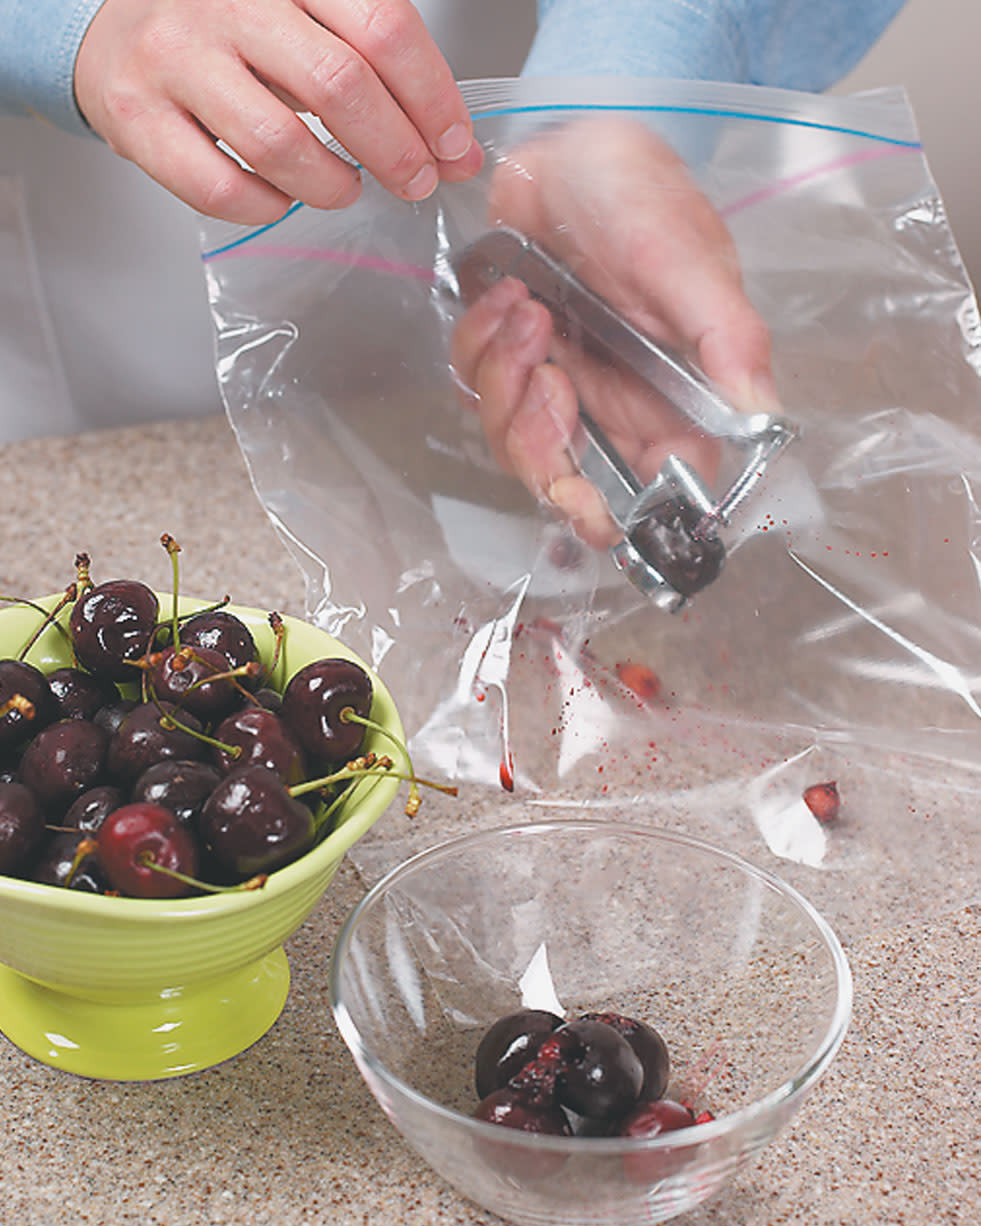 Tips-Splash-Free-Cherry-Pitting